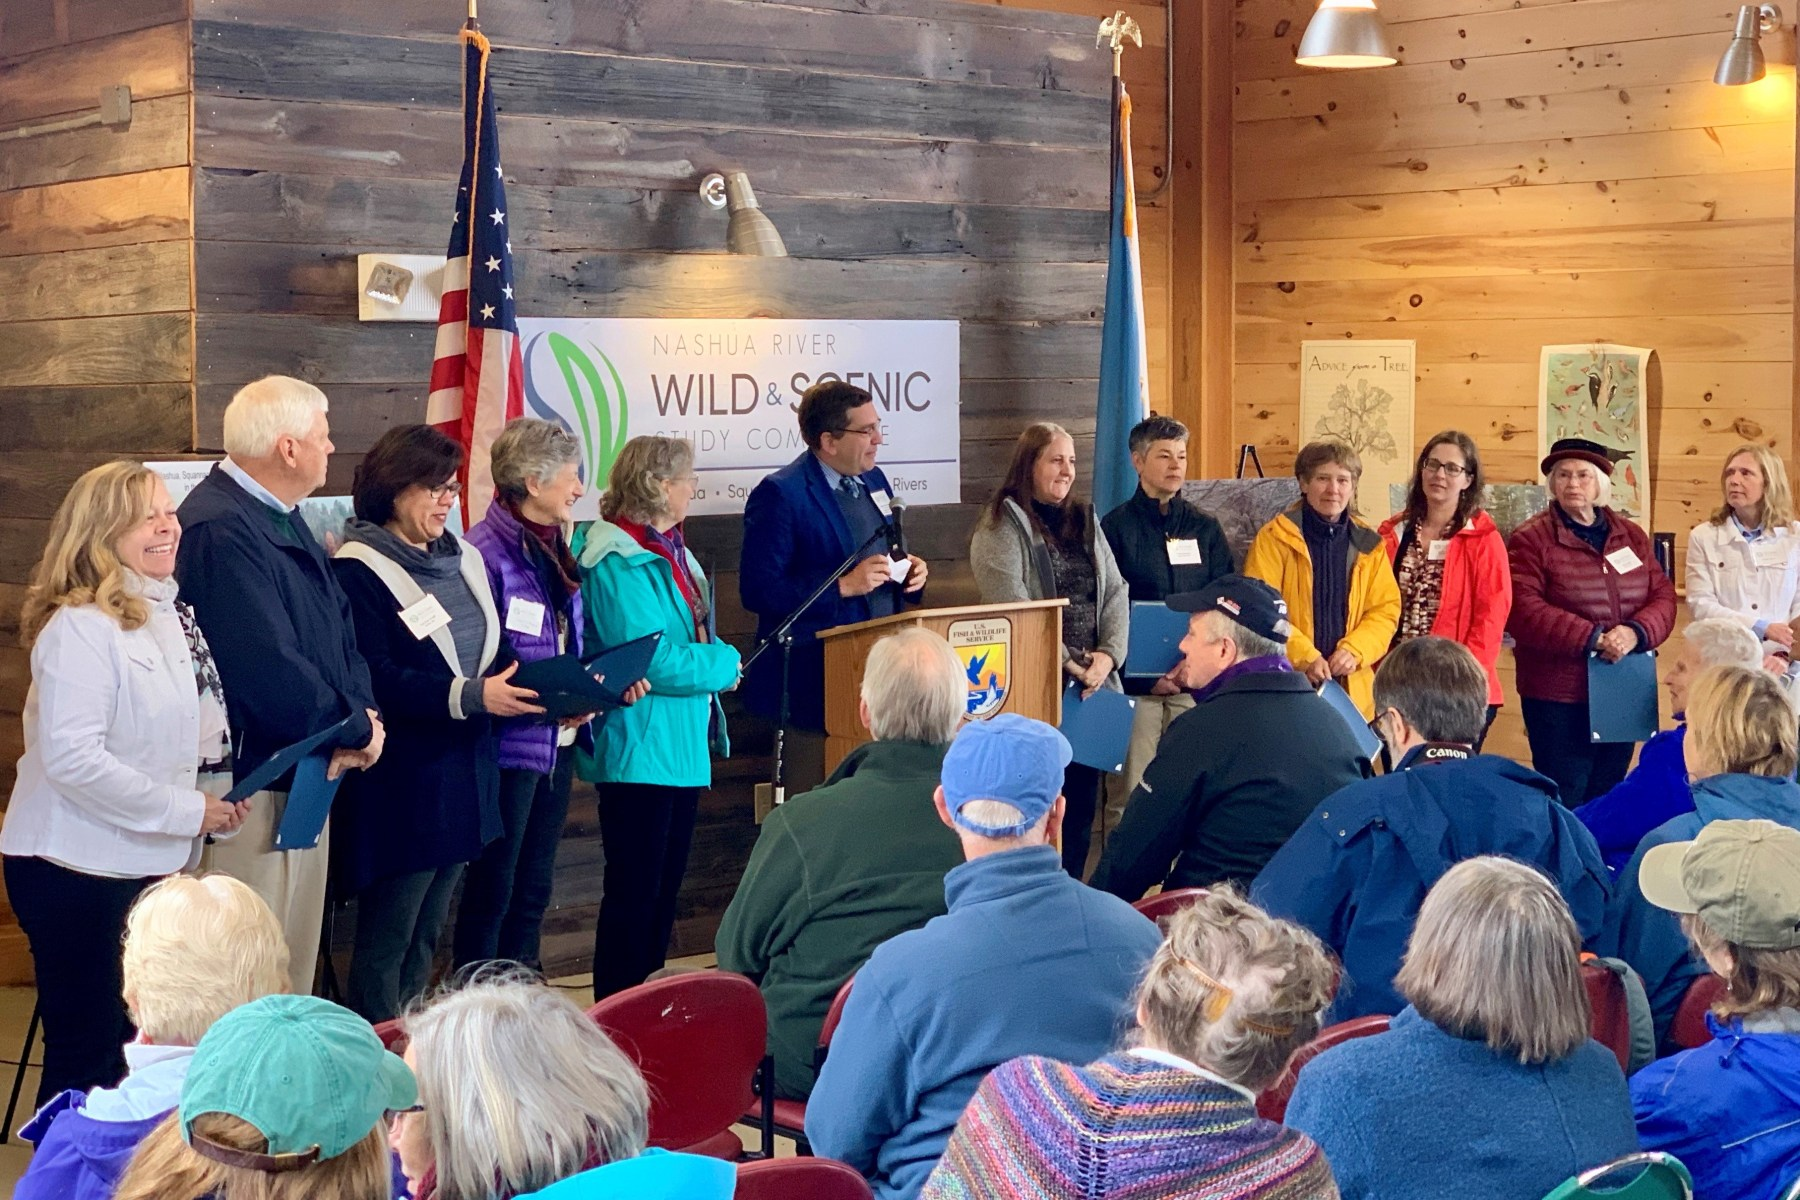 Representatives of the eleven towns who worked on and approved the Wild & Scenic plan.